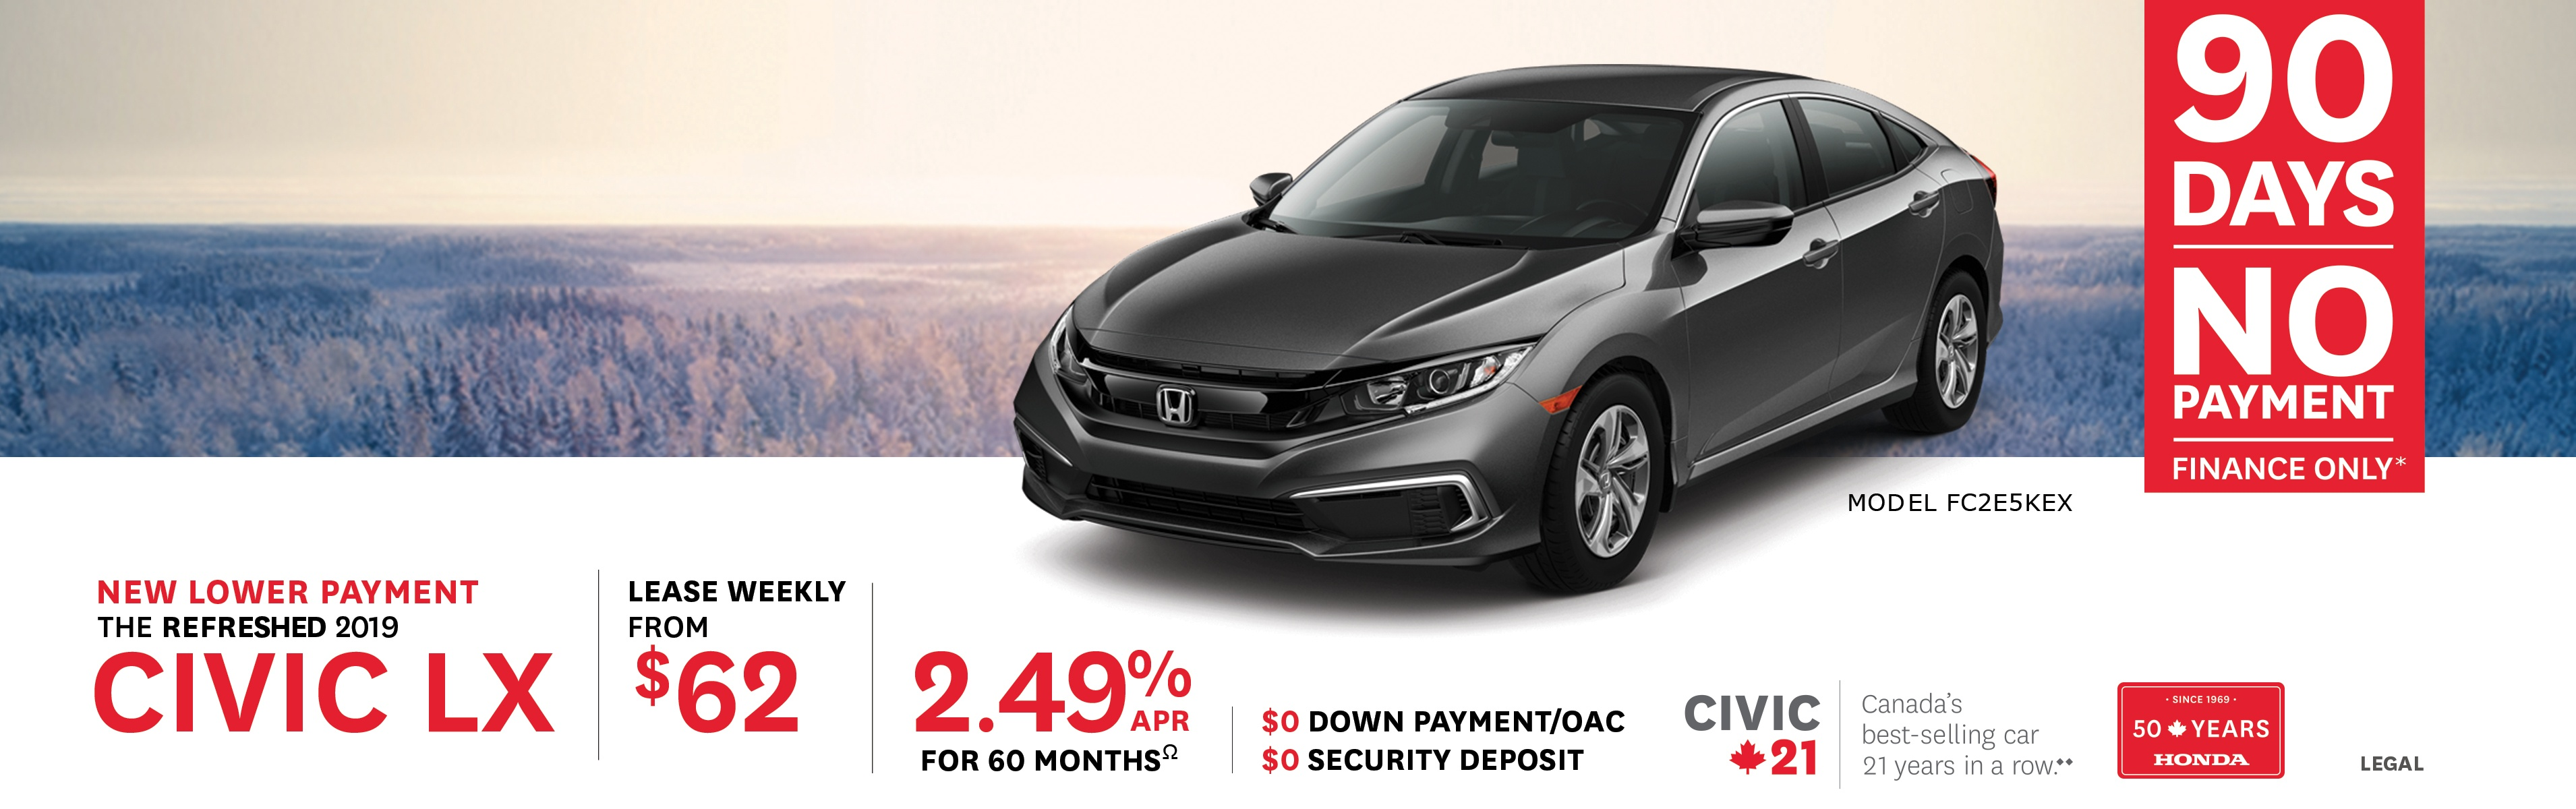 2019 Civic LX from $62 Weekly